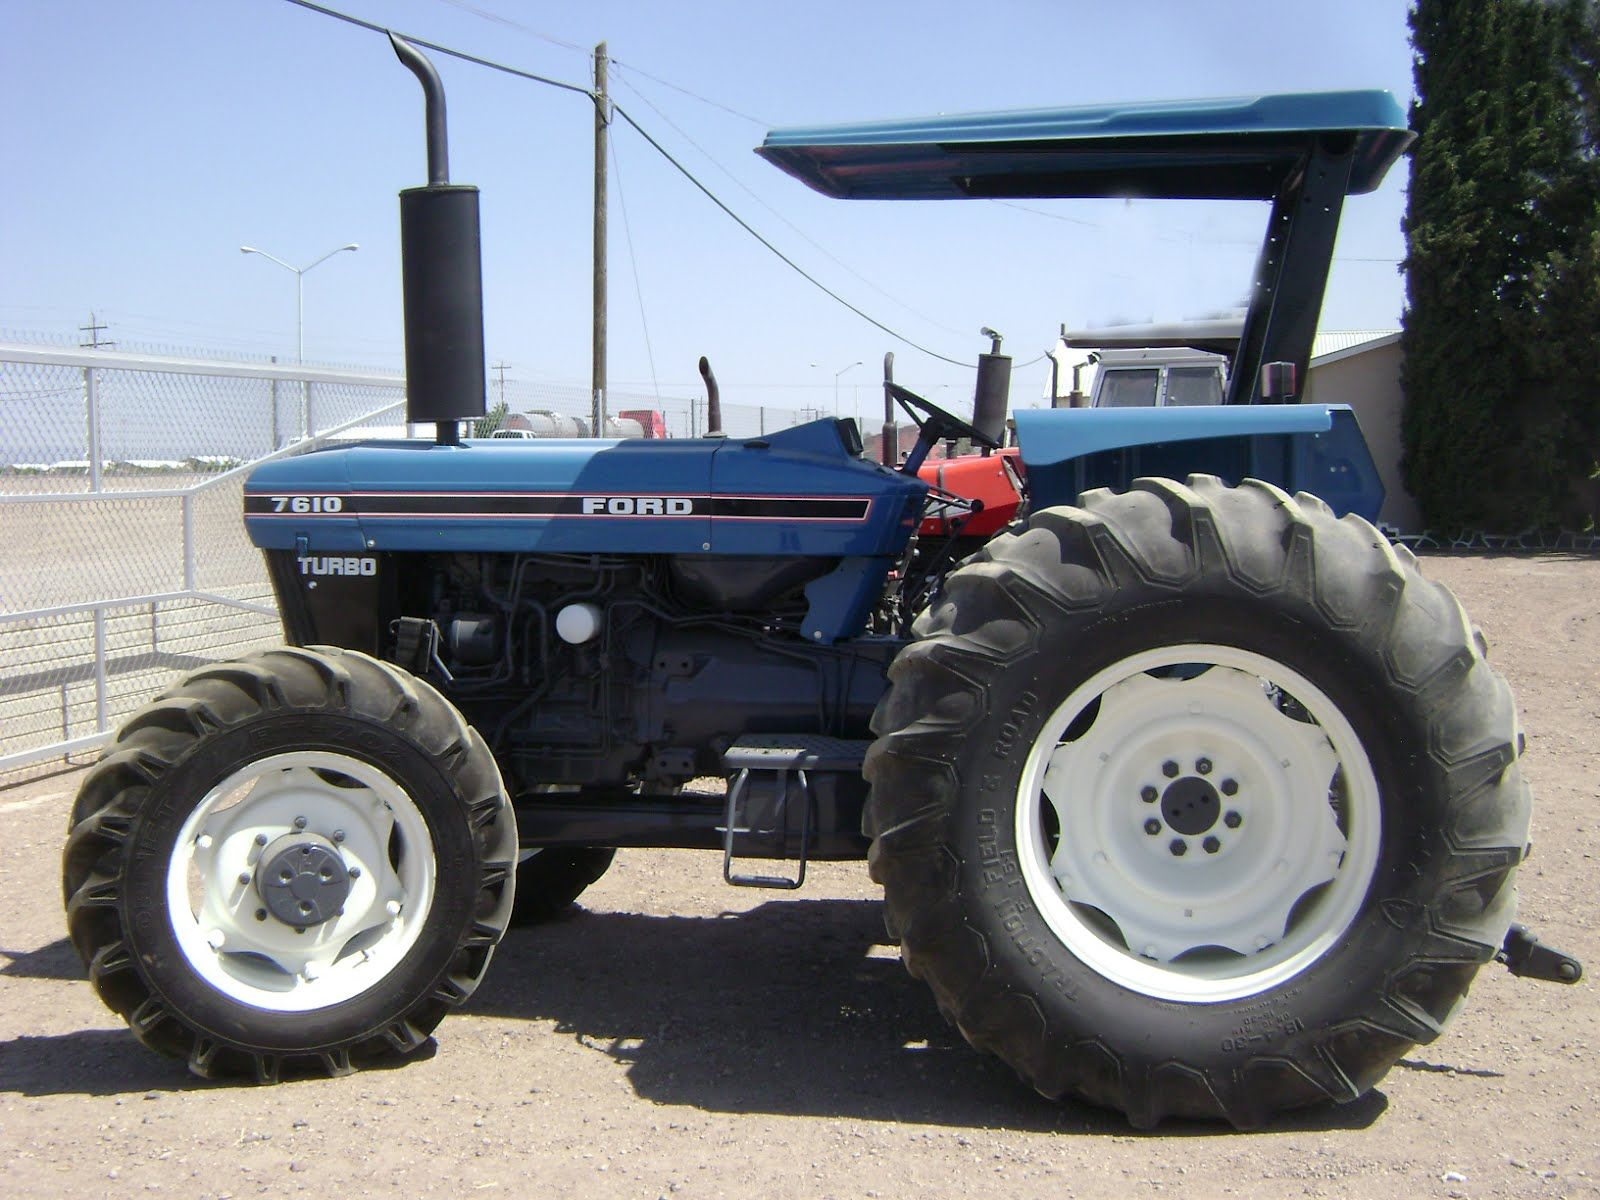 Ford 7610 Turbo Ford Tractors Tractors New Holland Tractor